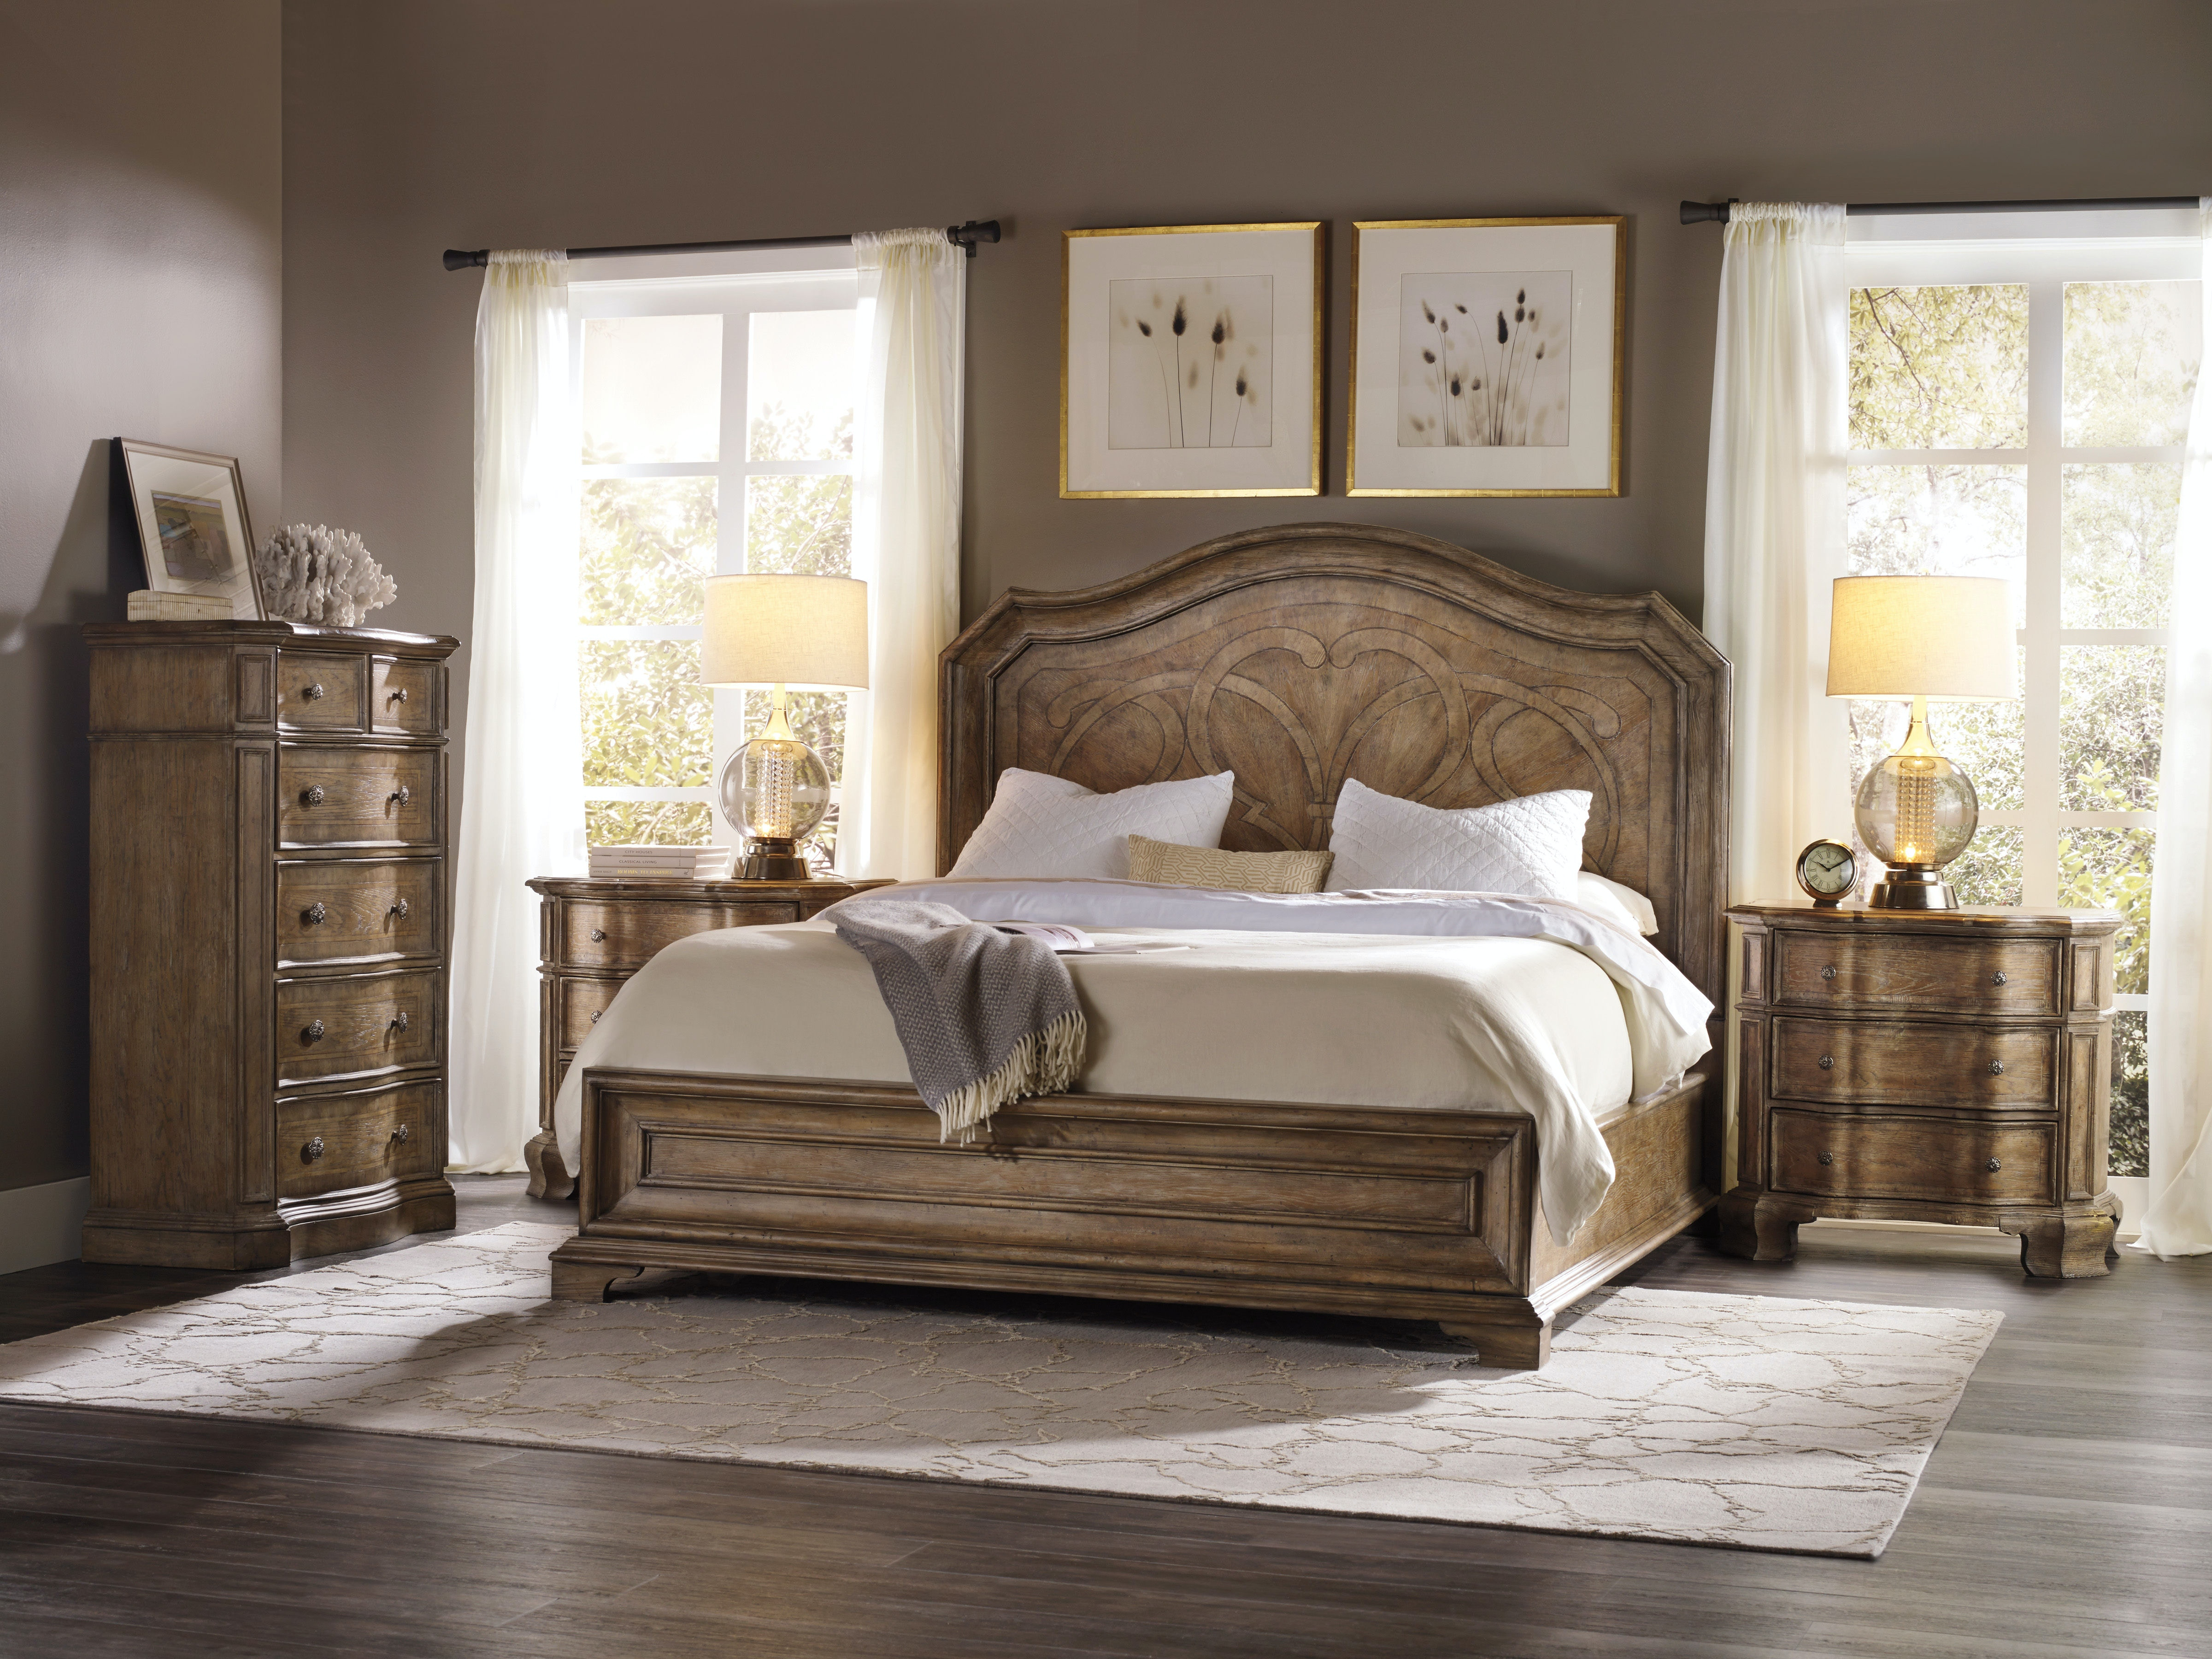 Hooker Furniture Bedroom Solana Six Drawer Chest